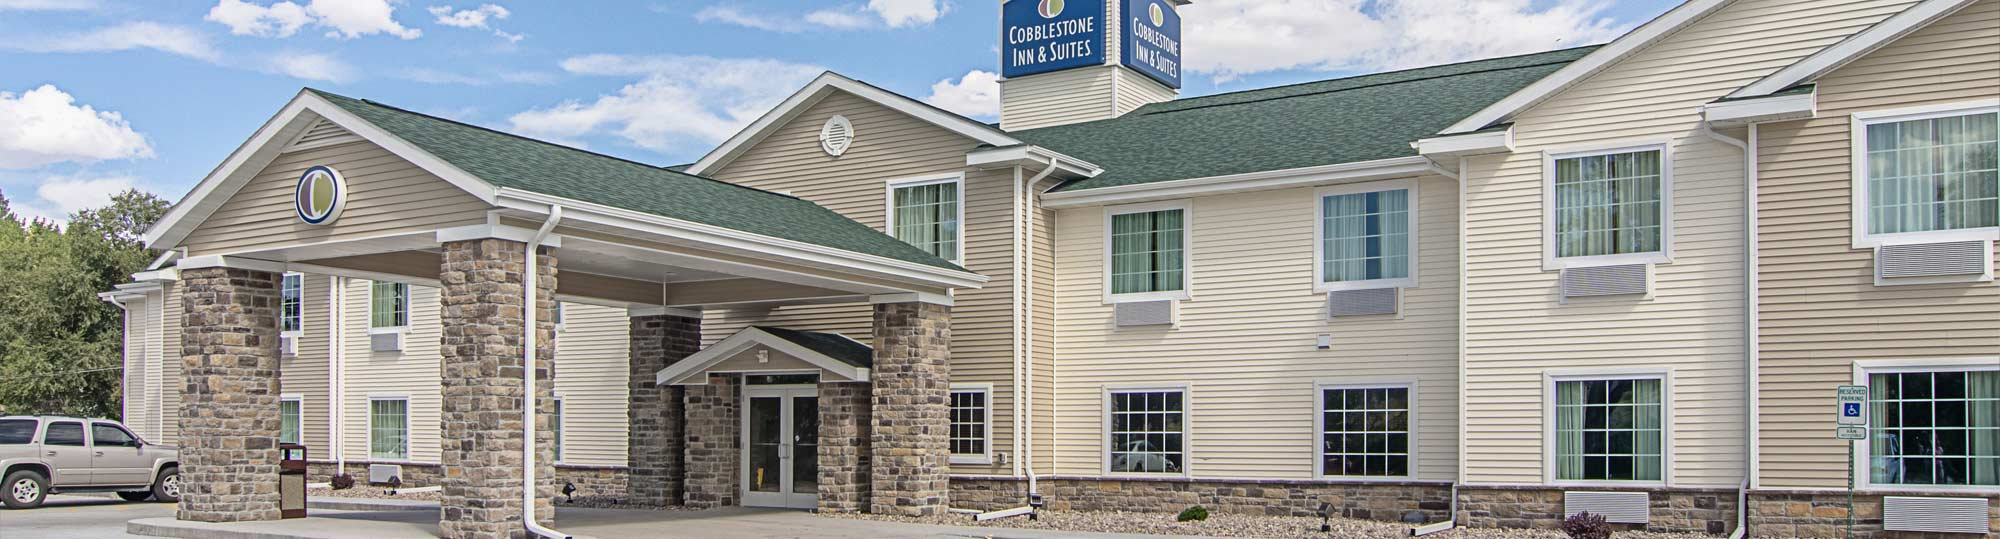 Cobblestone Inn and Suites Guernsey